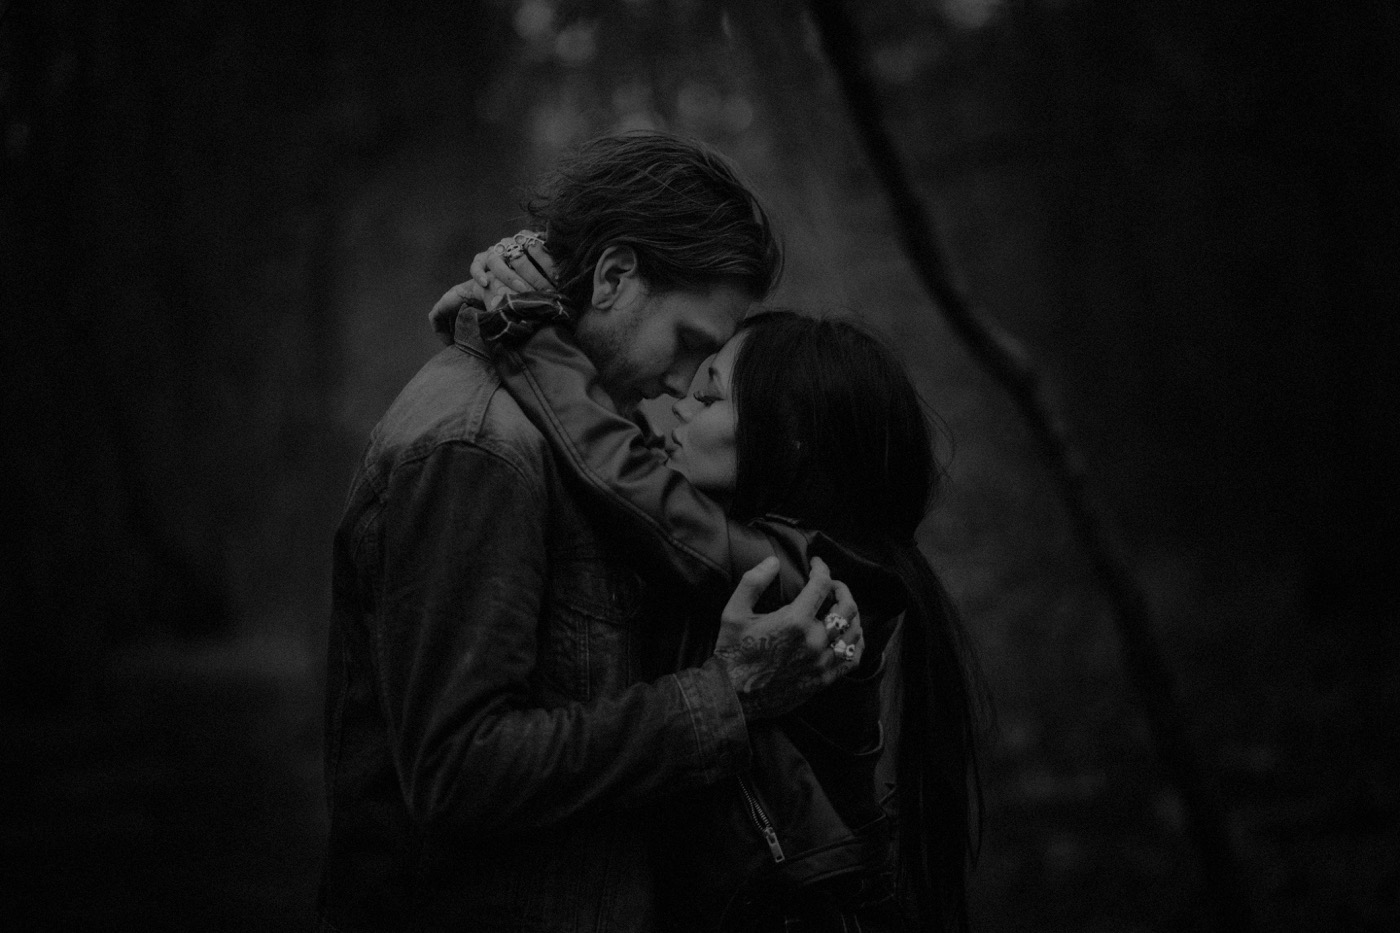 engement-photography-and-natural-couple-photoshoot-london-52.JPG